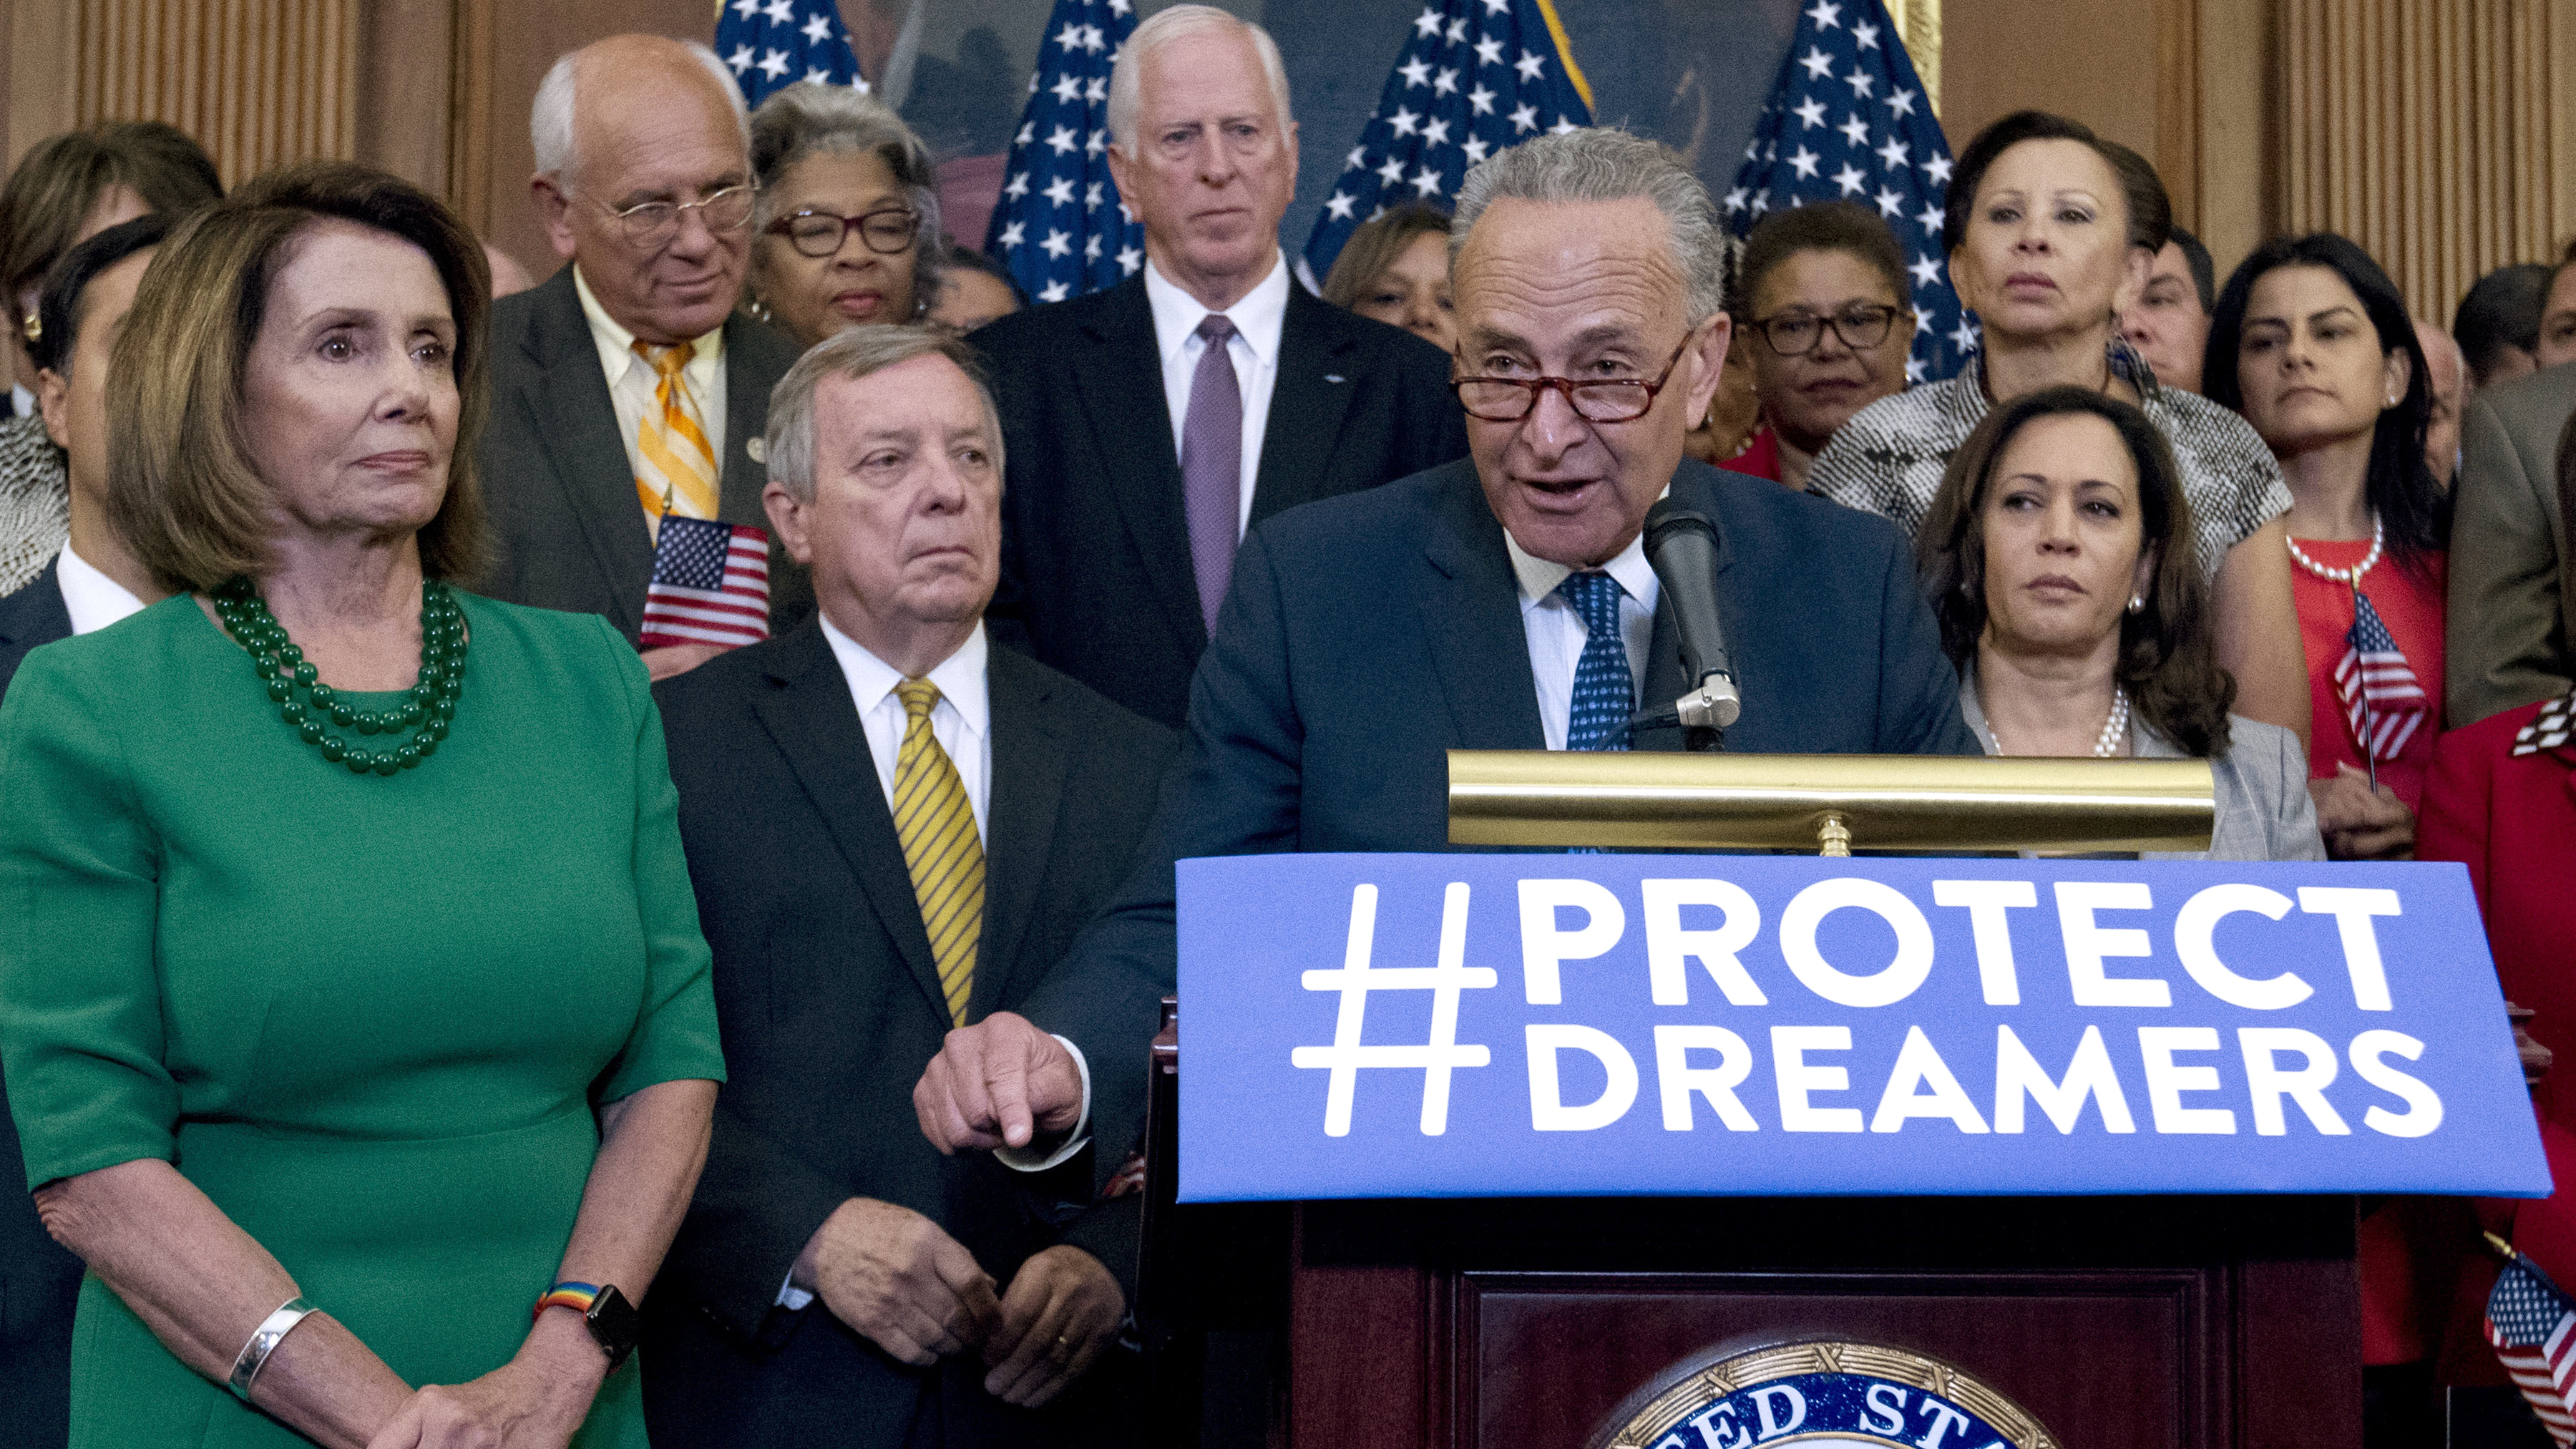 Do right, Congress, and make Dreamers legal